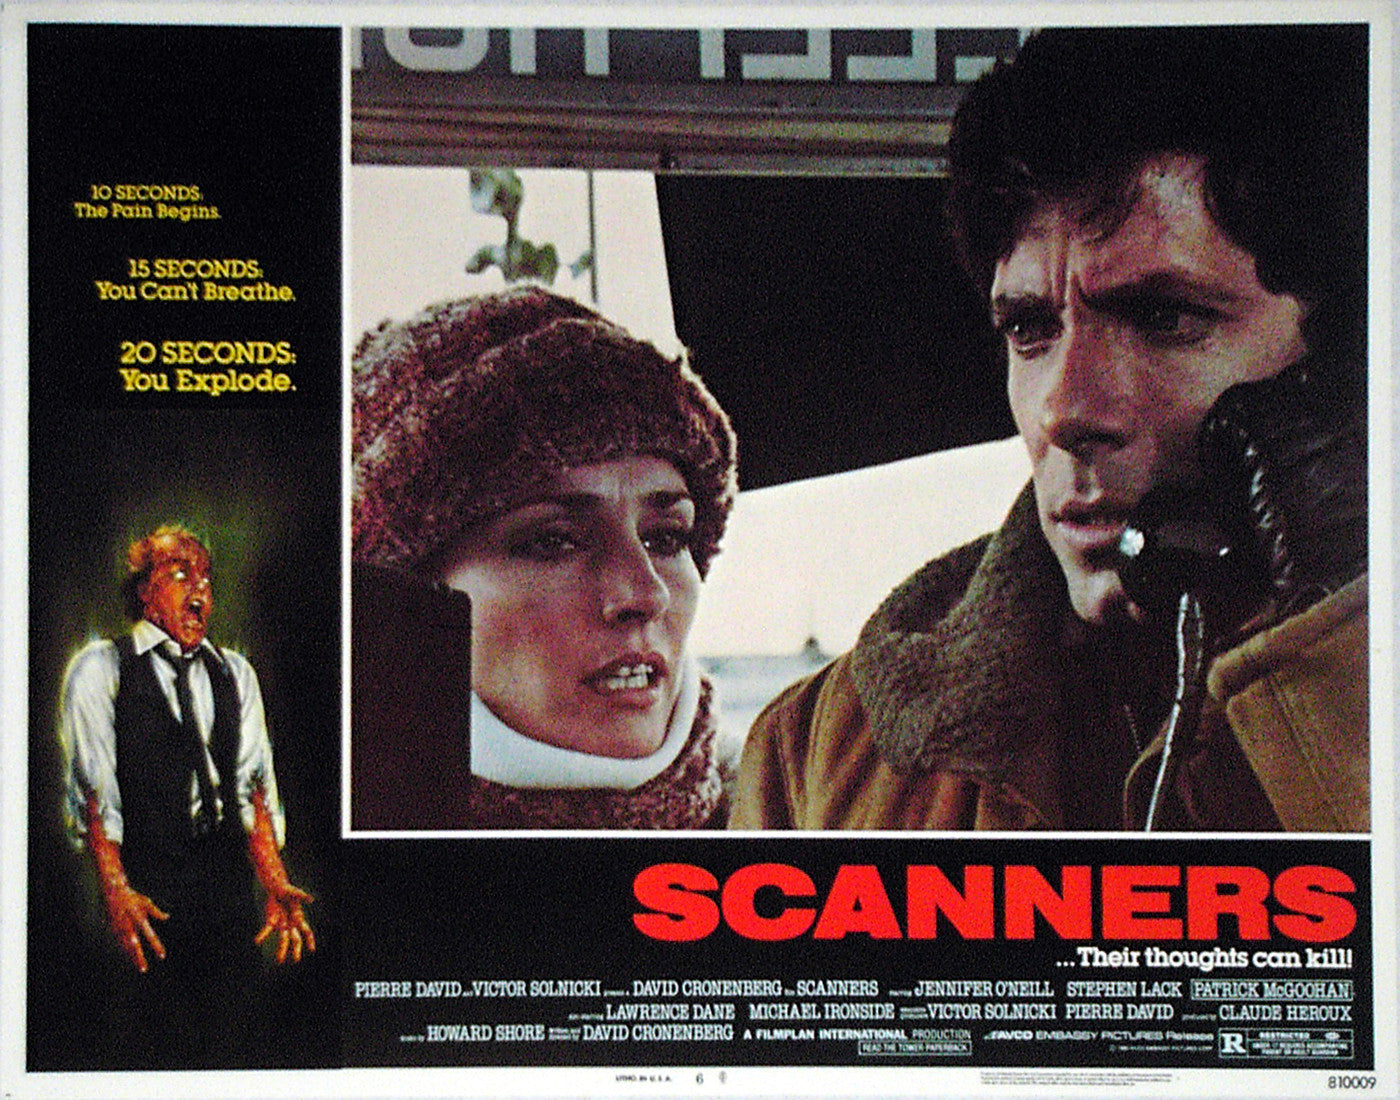 SCANNERS - US lobby card v6